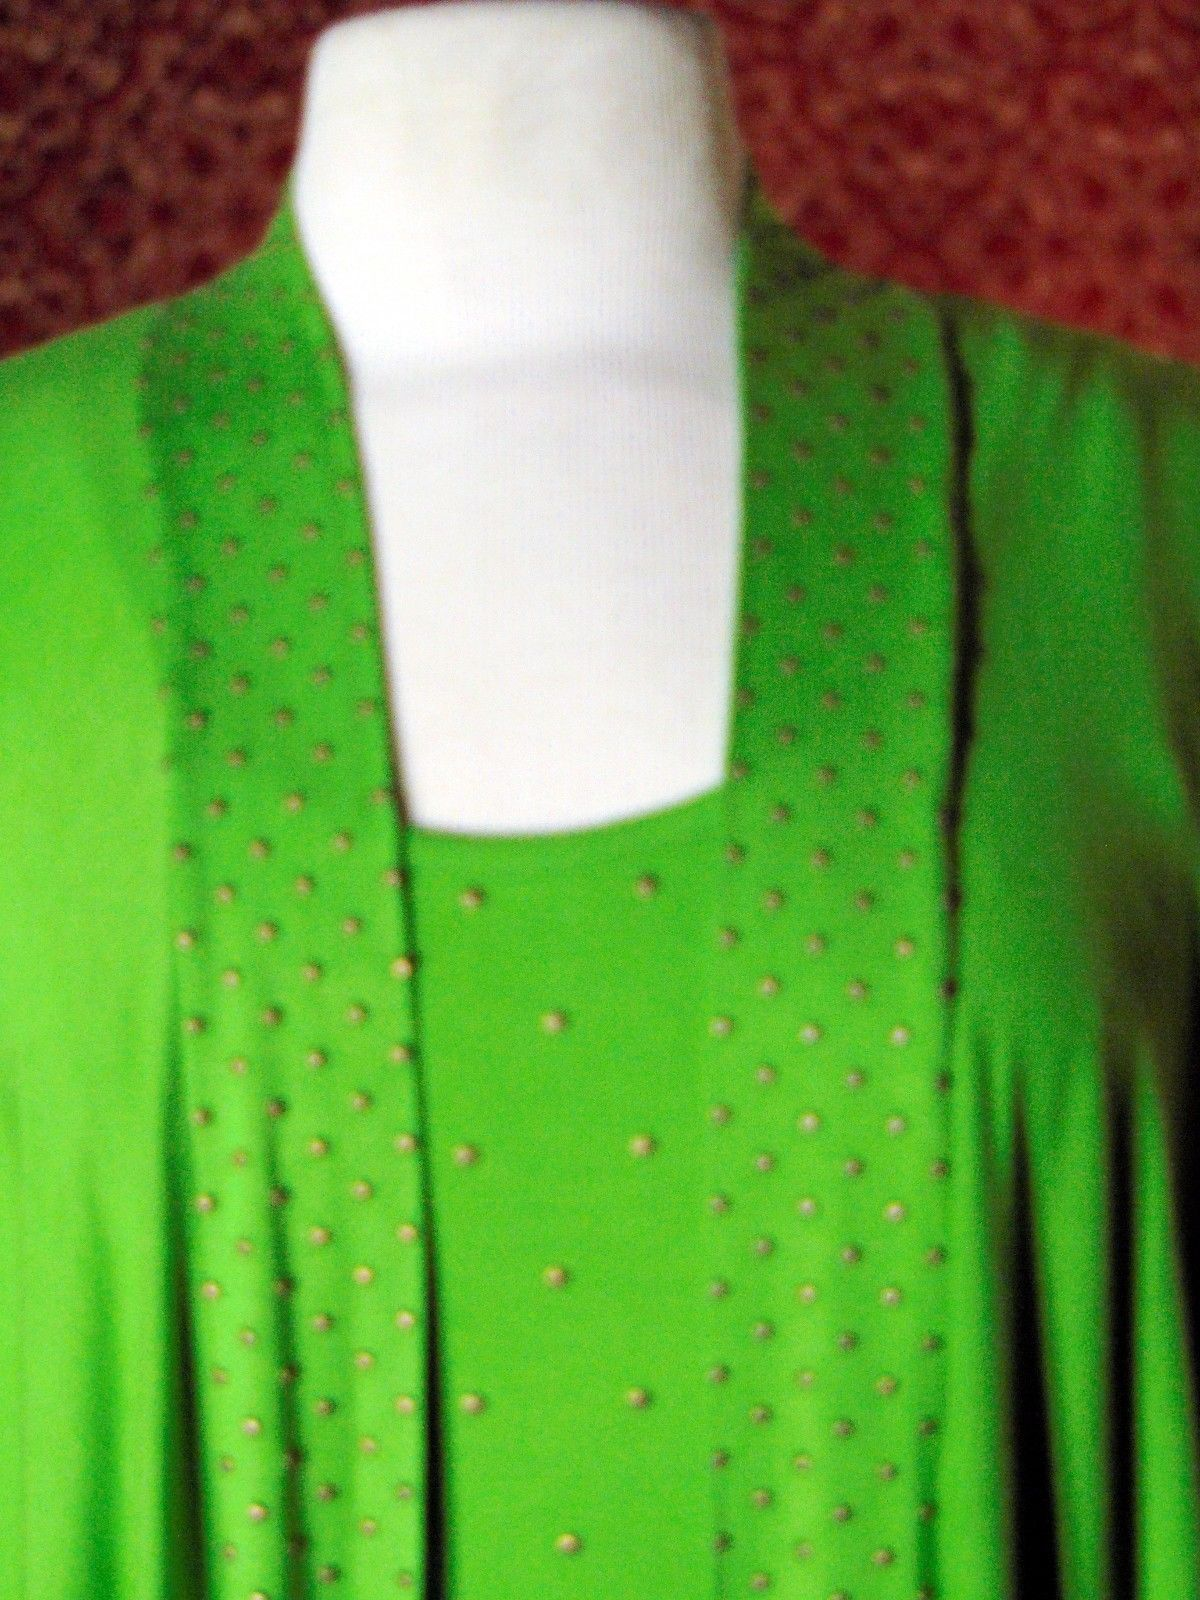 ETOILE green 2 piece stretch rayon tank blouse & sweater jacket M (T47-02I8G) image 2